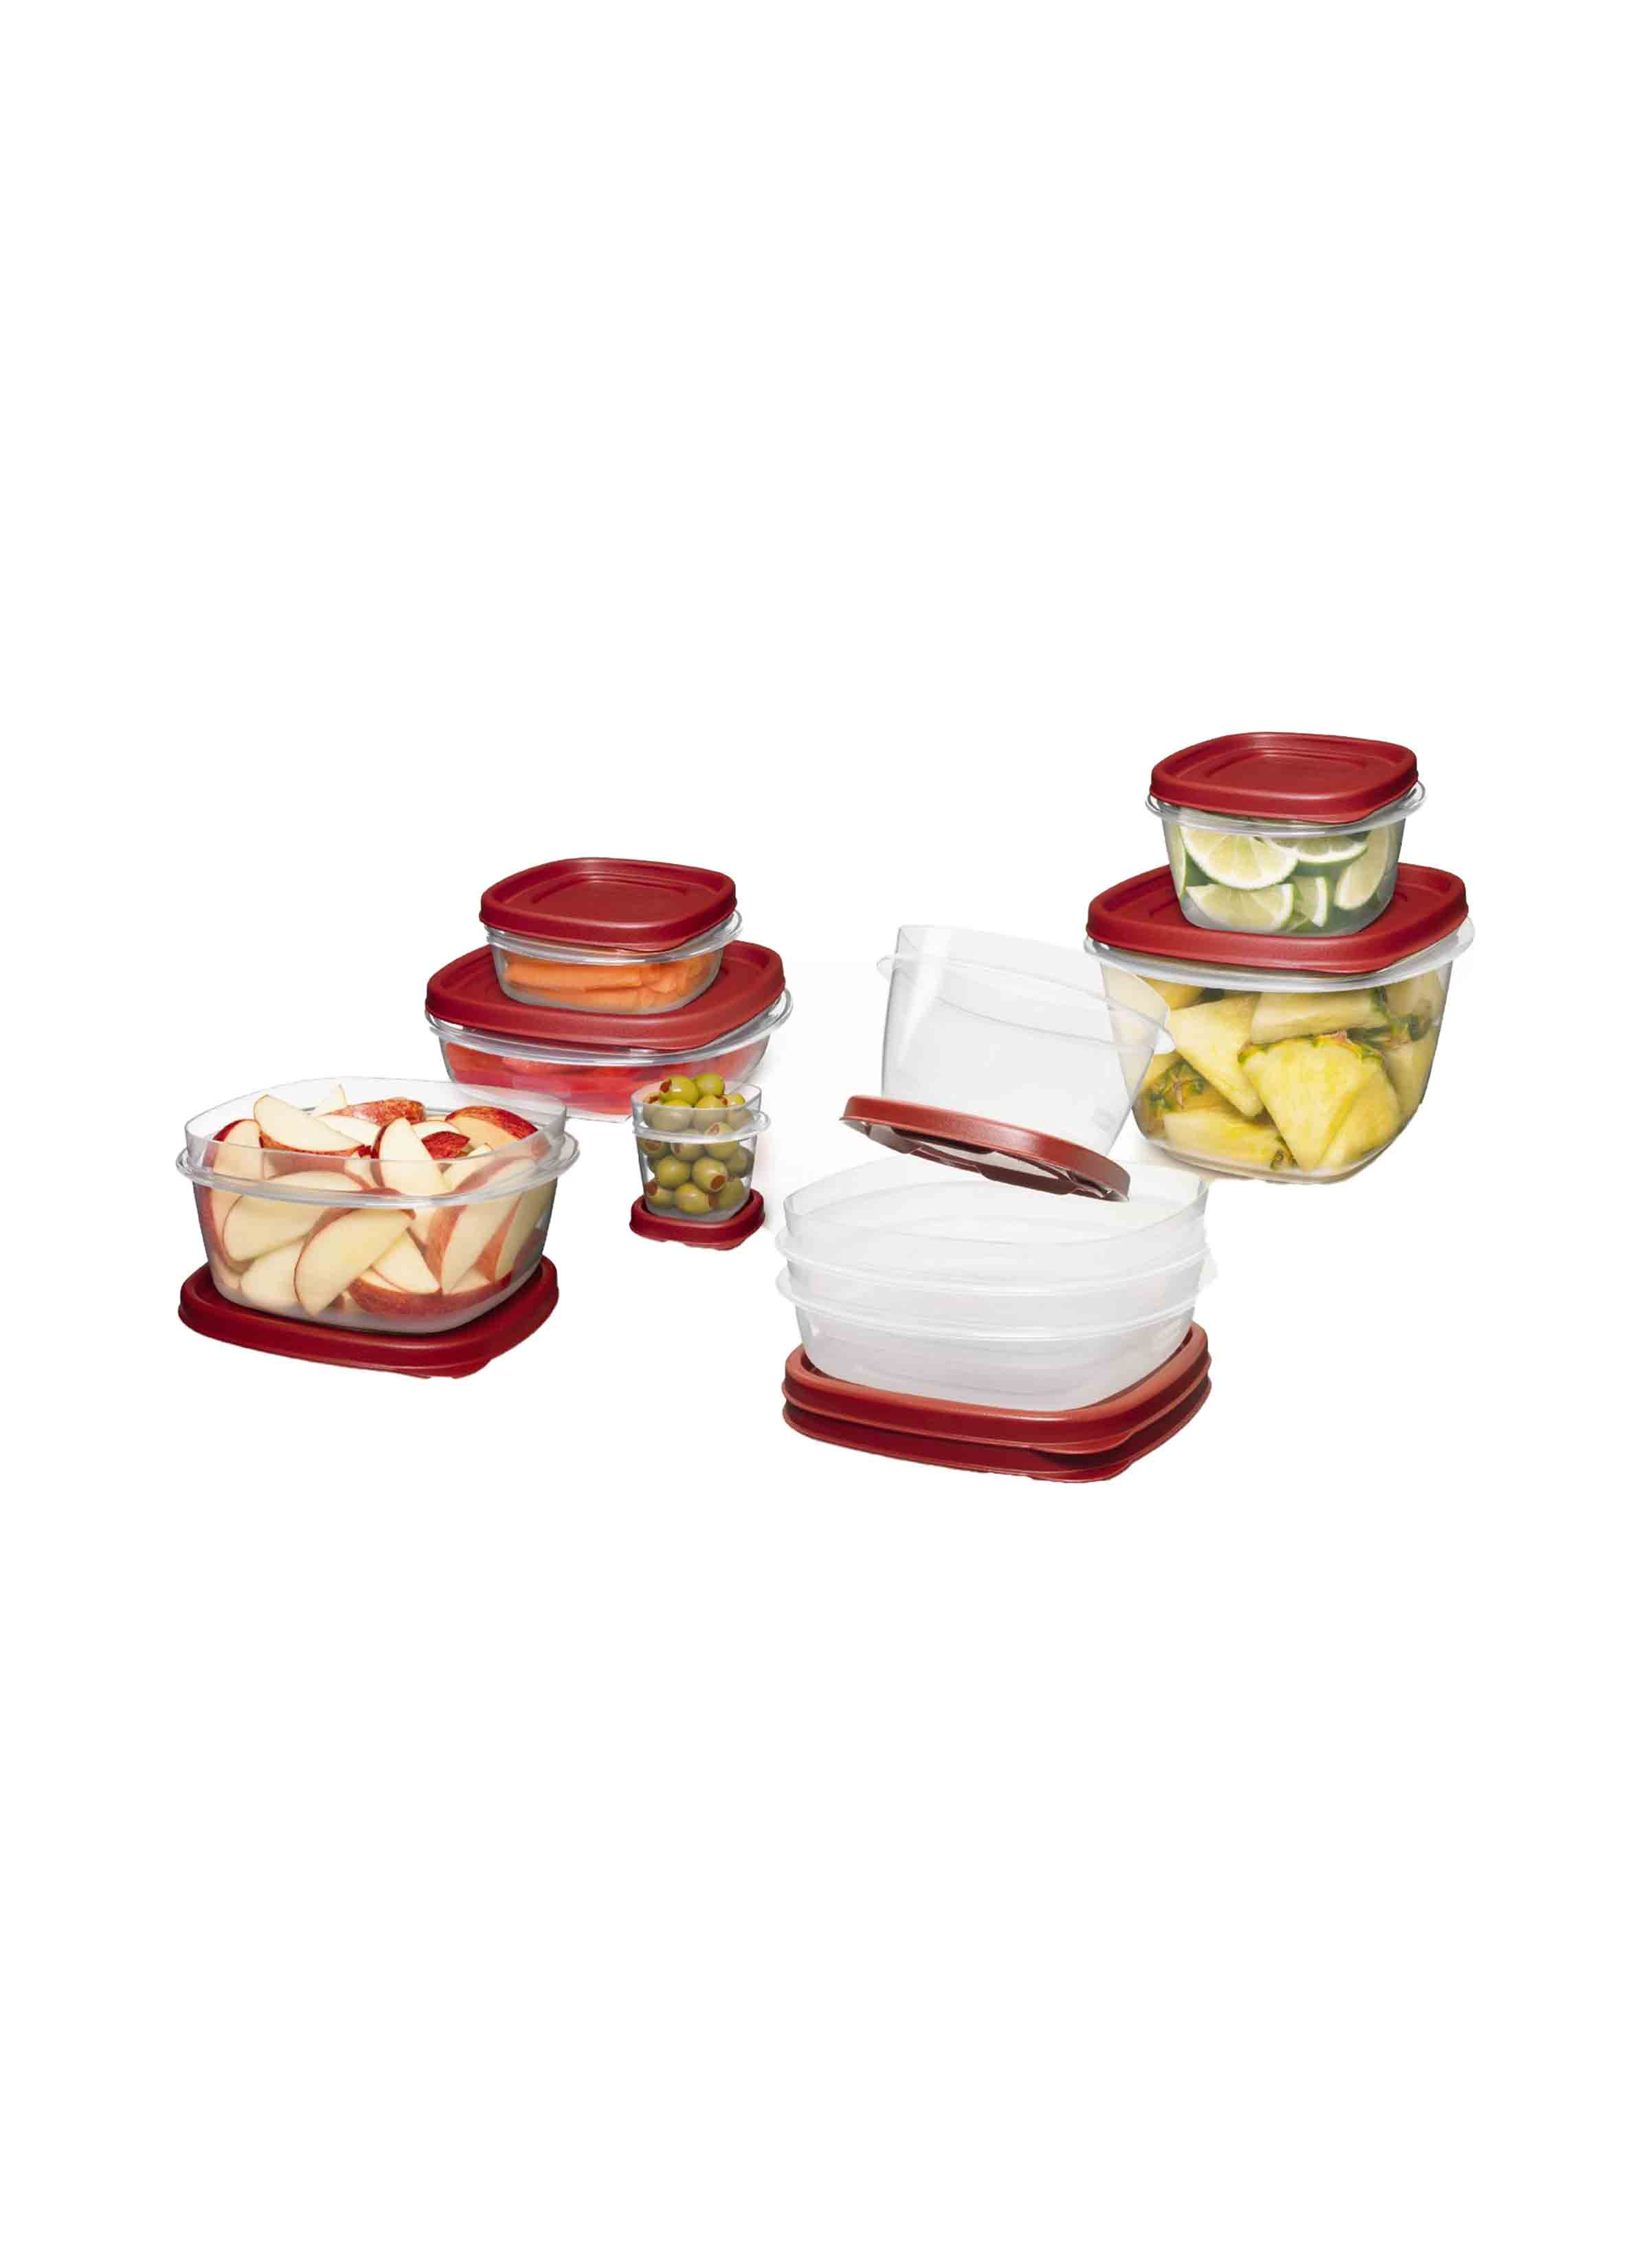 Rubbermaid 24PC Easy Find Lids Set 2 pcs 05 cup 2 pcs 125 cup